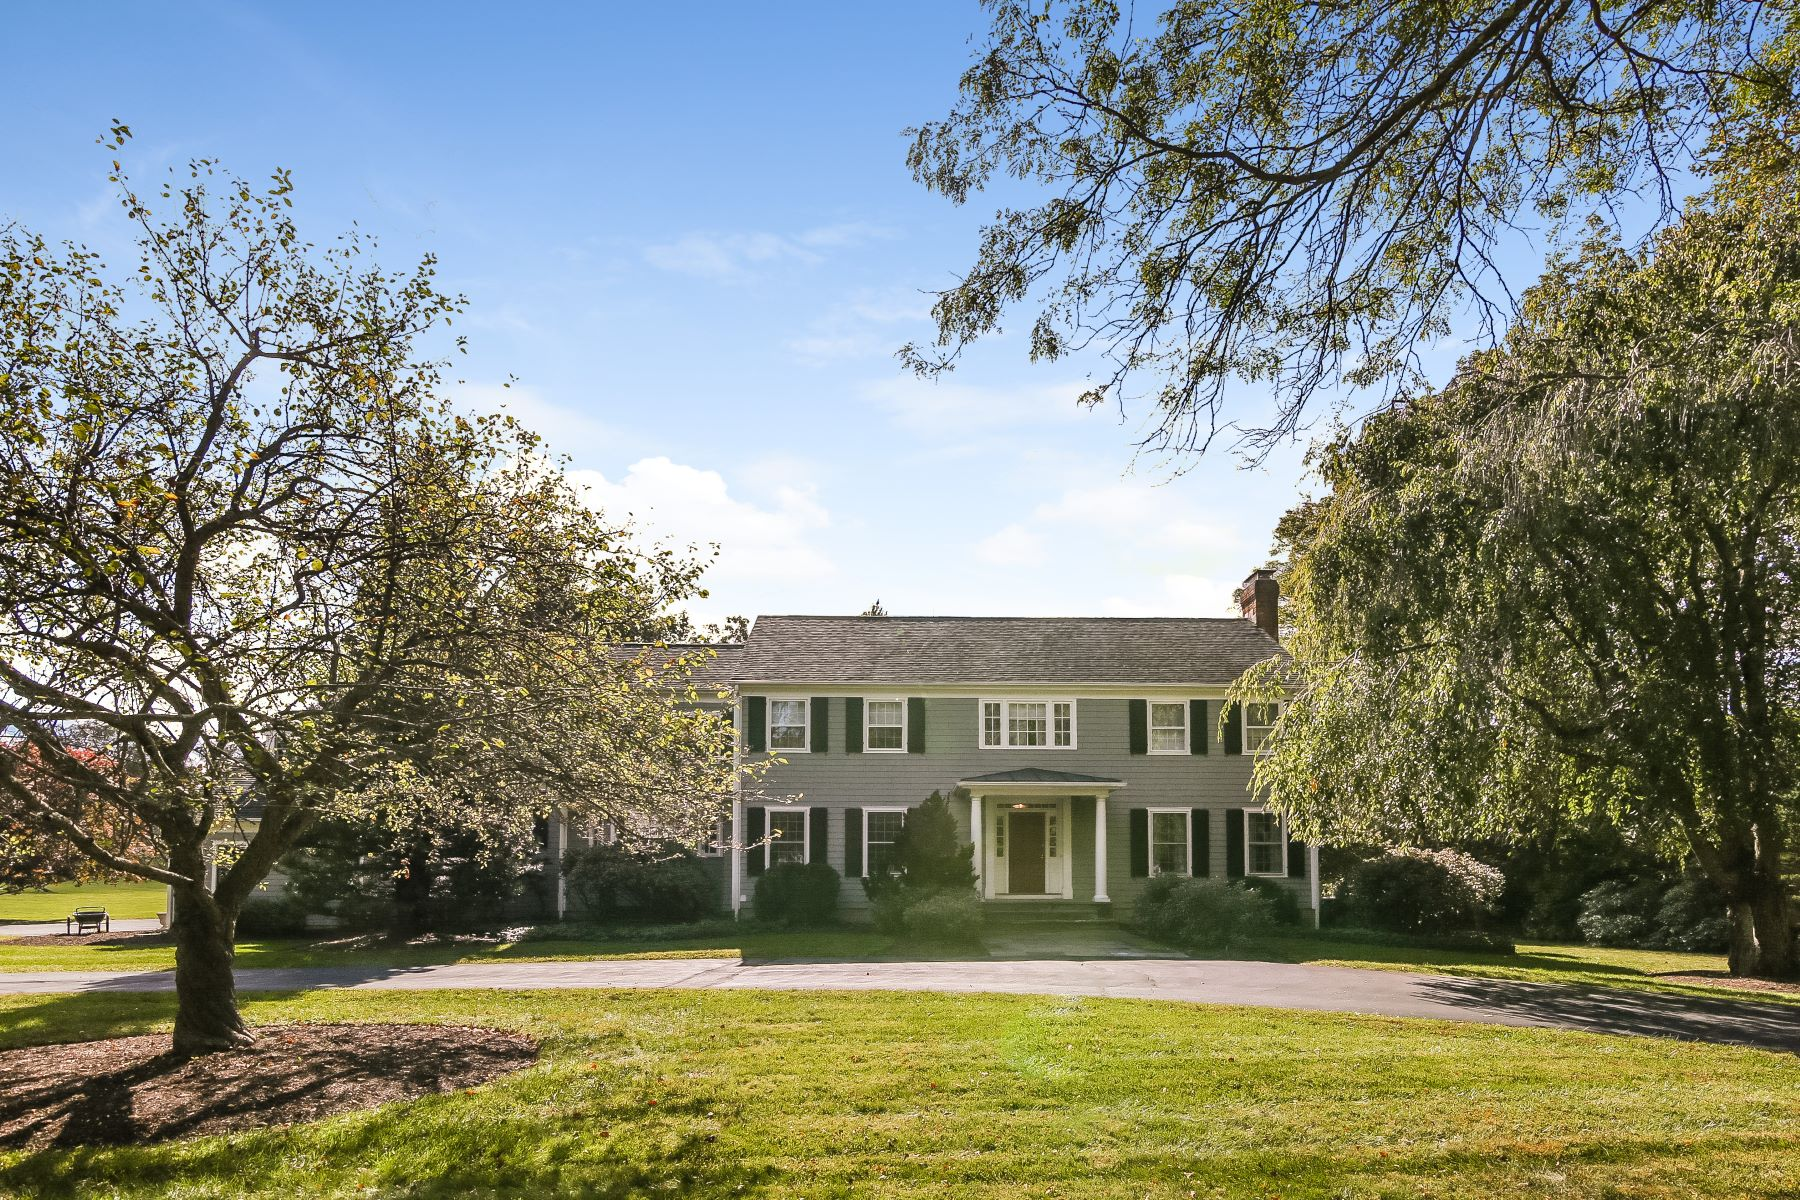 Casa Unifamiliar por un Venta en 15 Carriage Road 15 Carriage Road Wilton, Connecticut 06897 Estados Unidos